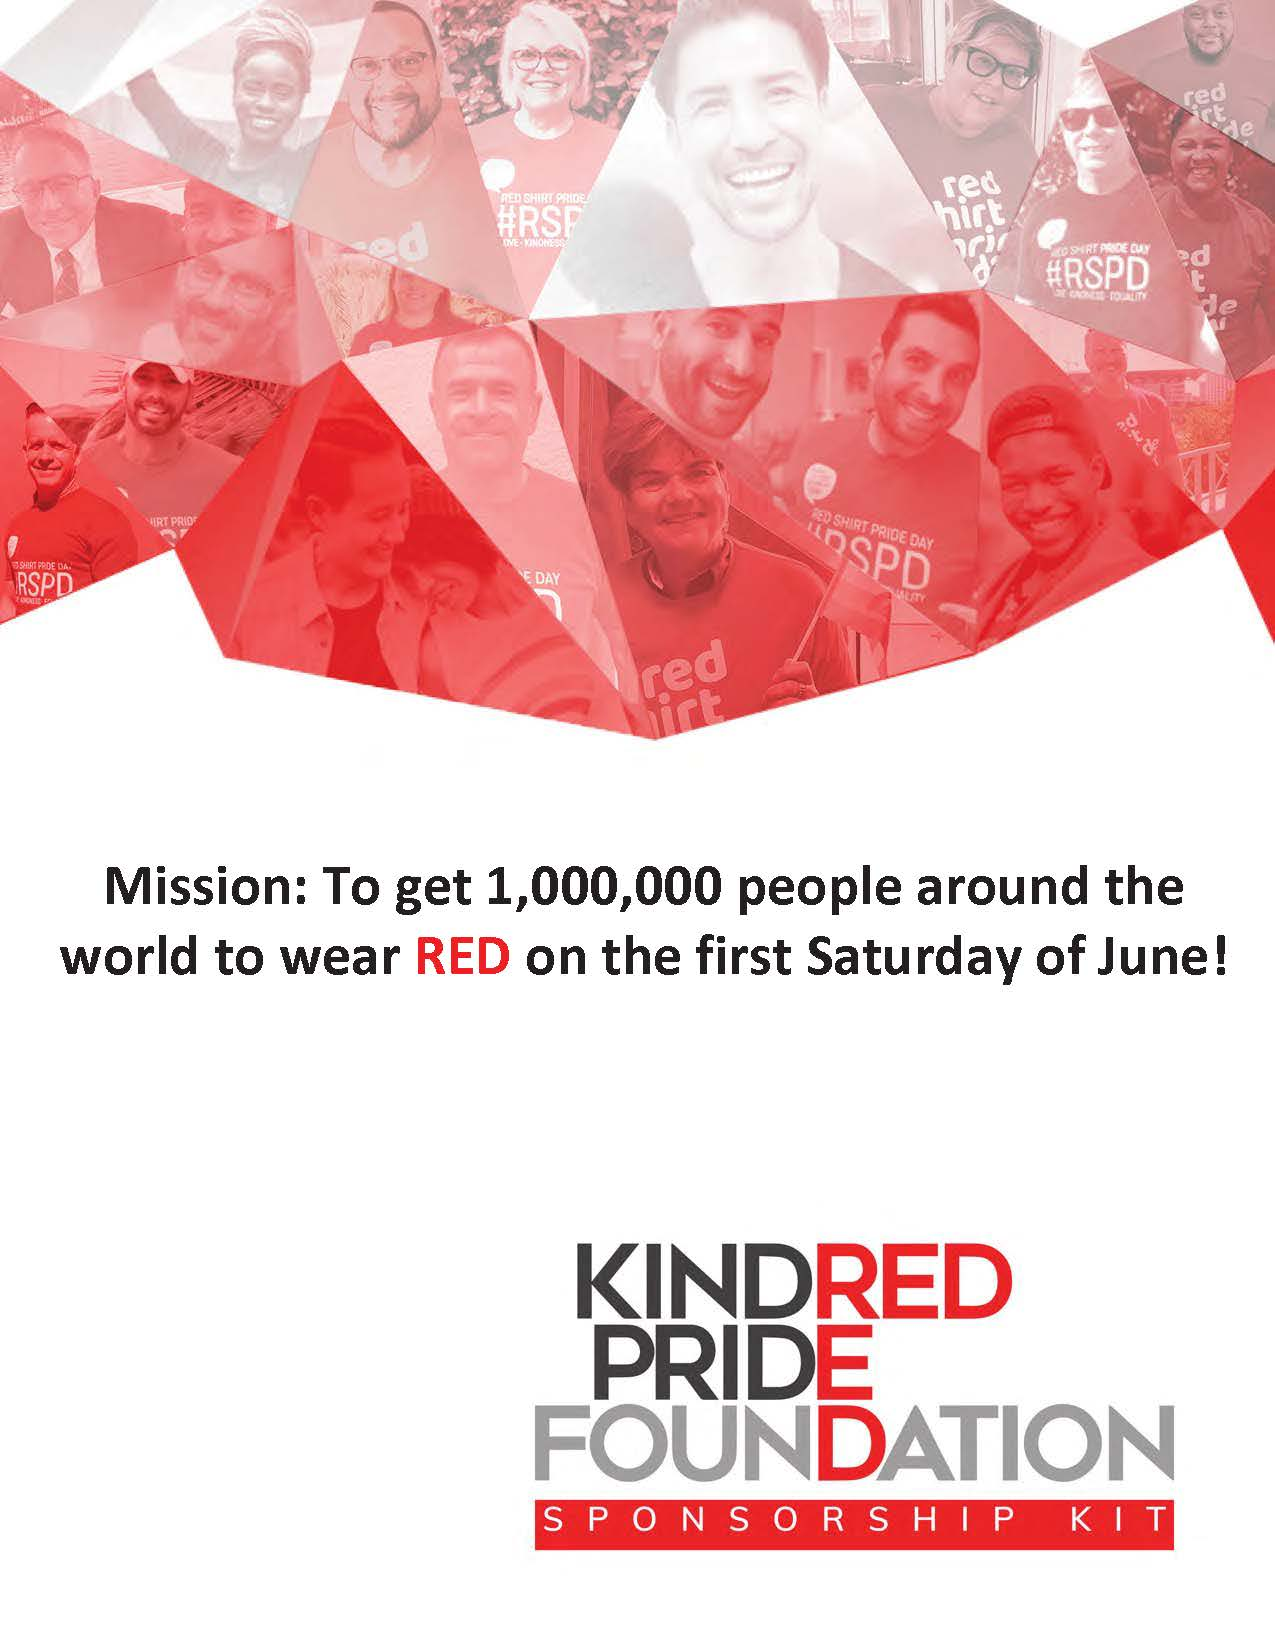 outloud enterprises KindRED Pride Foundation sponsorship 2020 thumbnail graphic